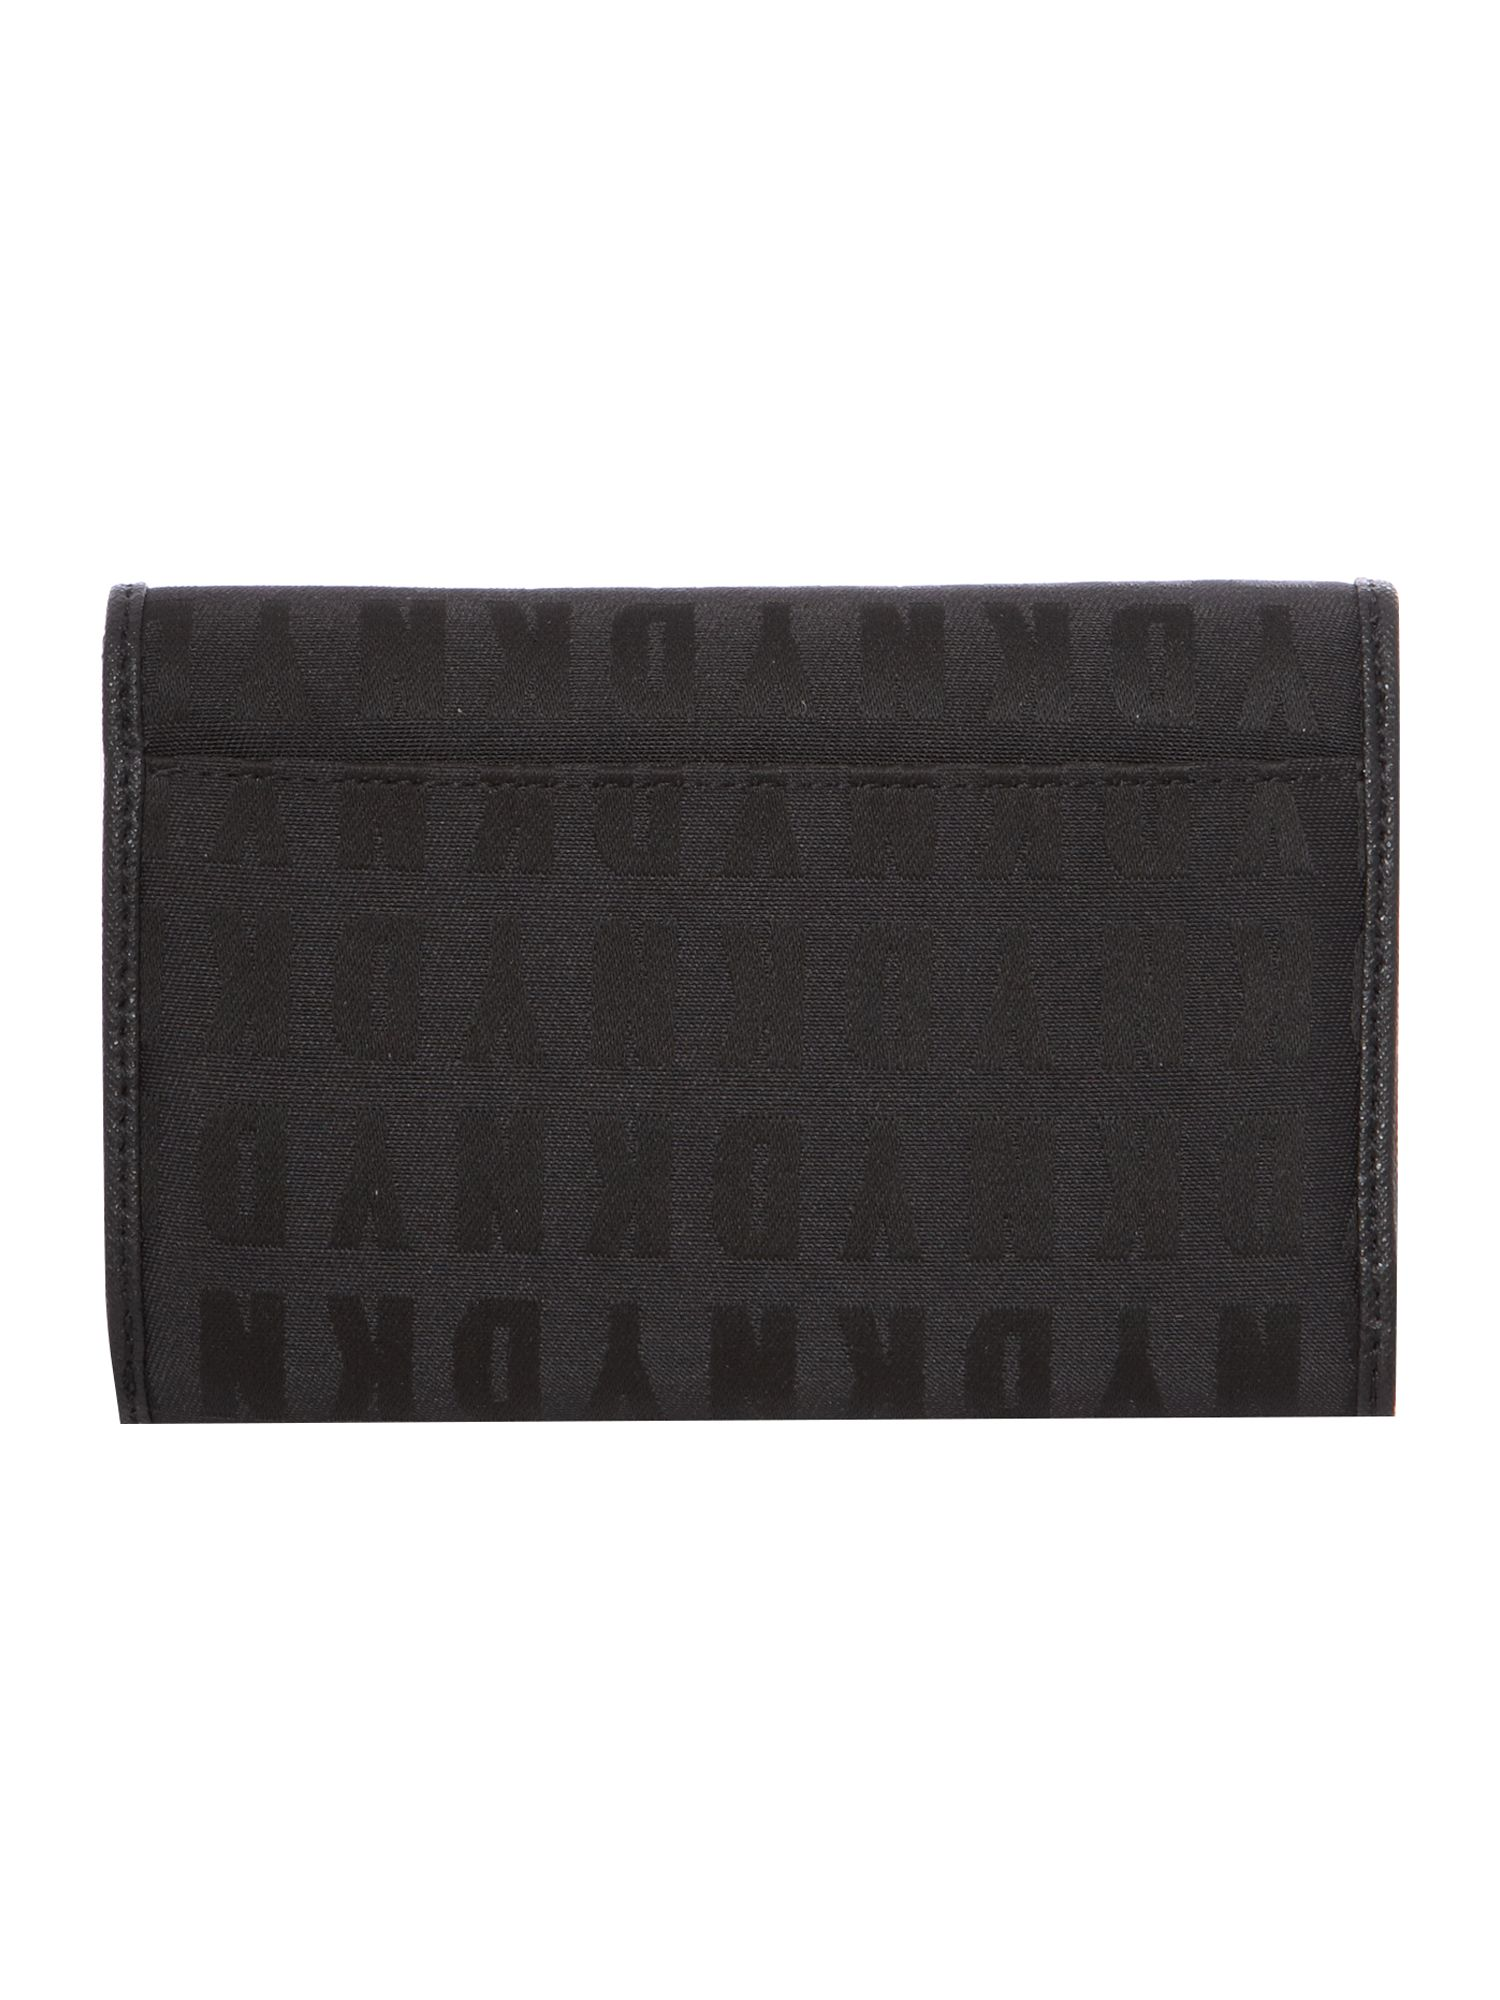 Black medium zip around purse